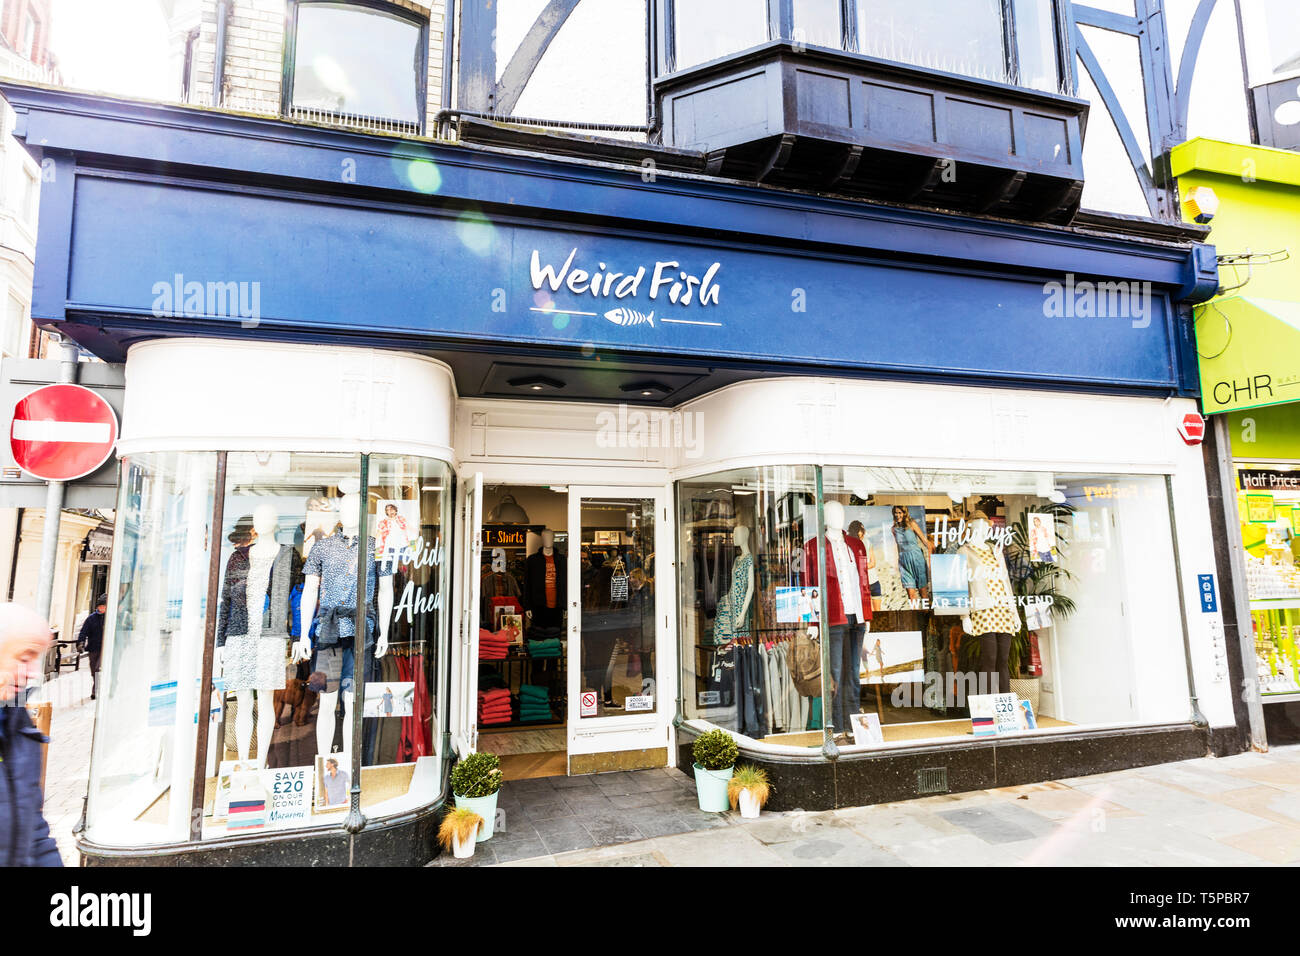 Weird Fish clothing, Whitby Yorkshire UK England, Weird Fish shop, Weird Fish store, Weird Fish sign, Weird Fish clothes shop, Weird Fish, shop, store - Stock Image